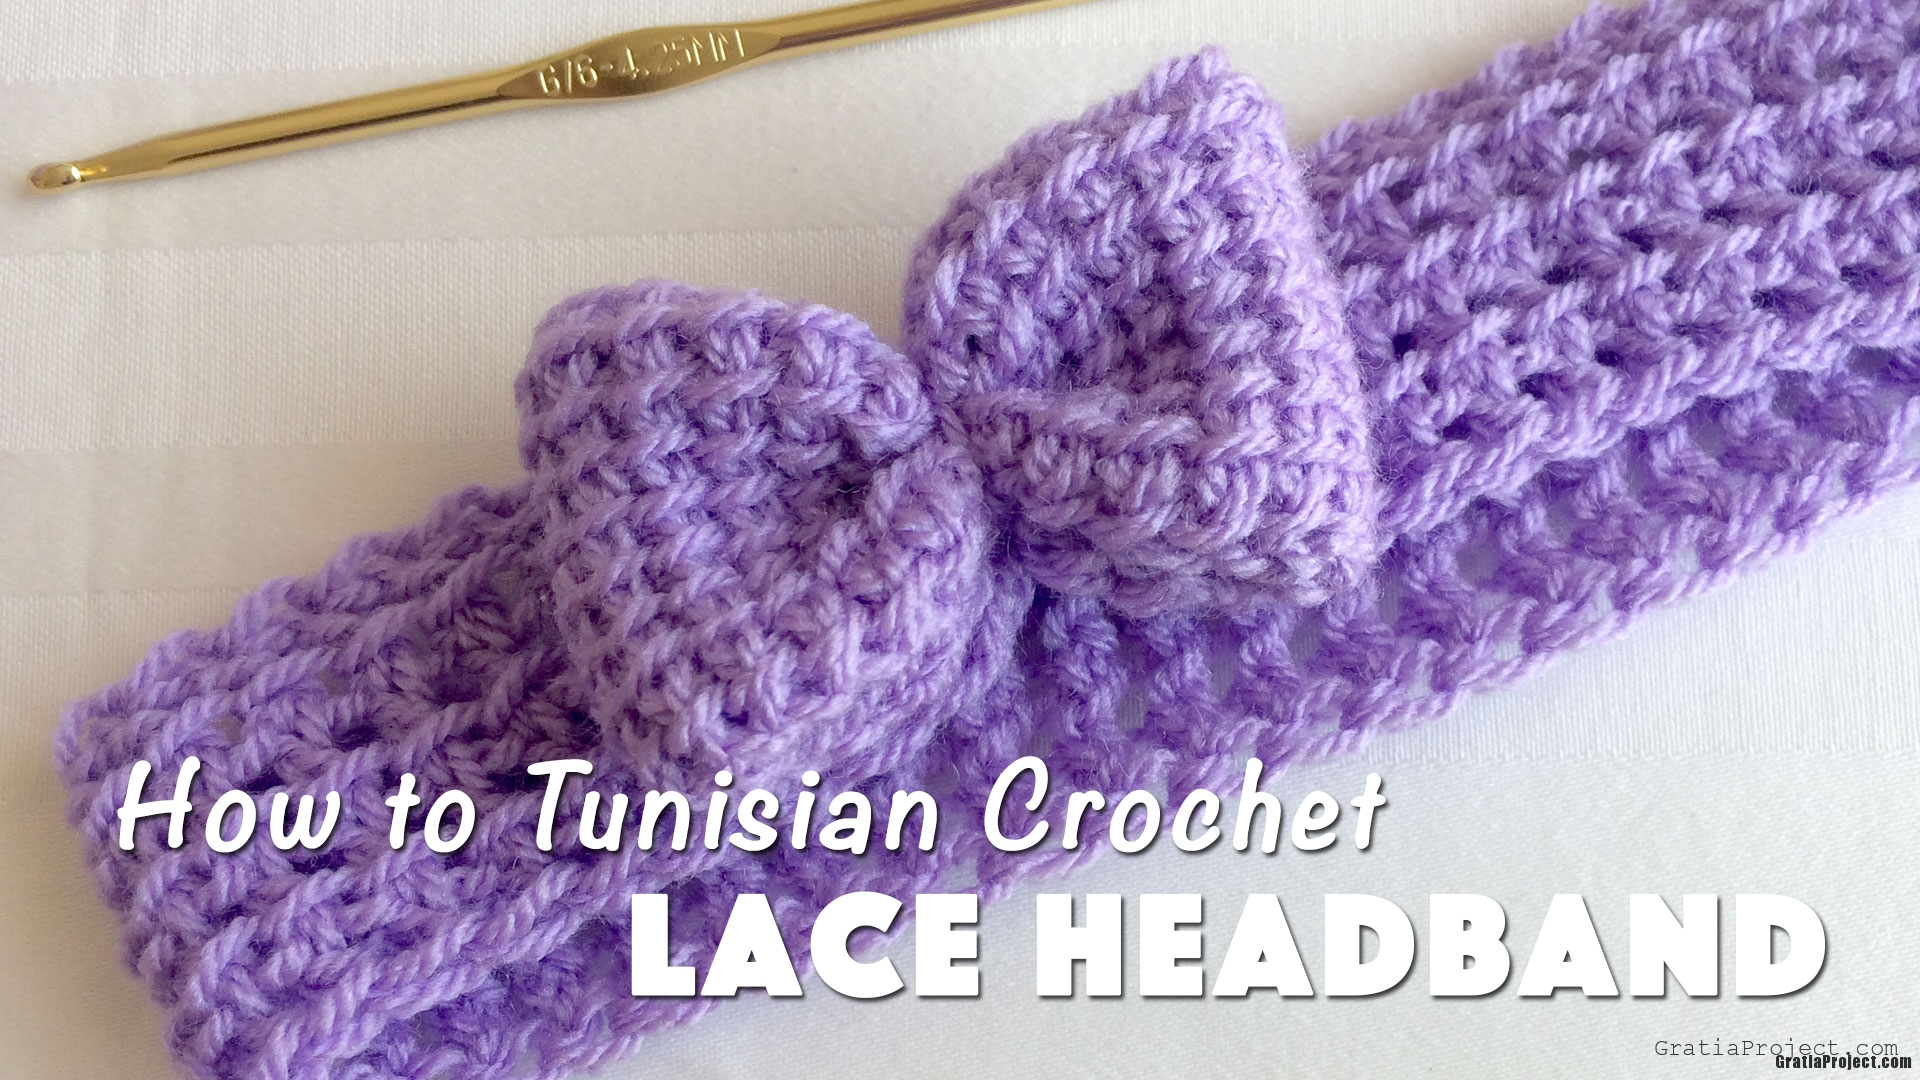 how-to-tunisian-crochet-lace-headband-2